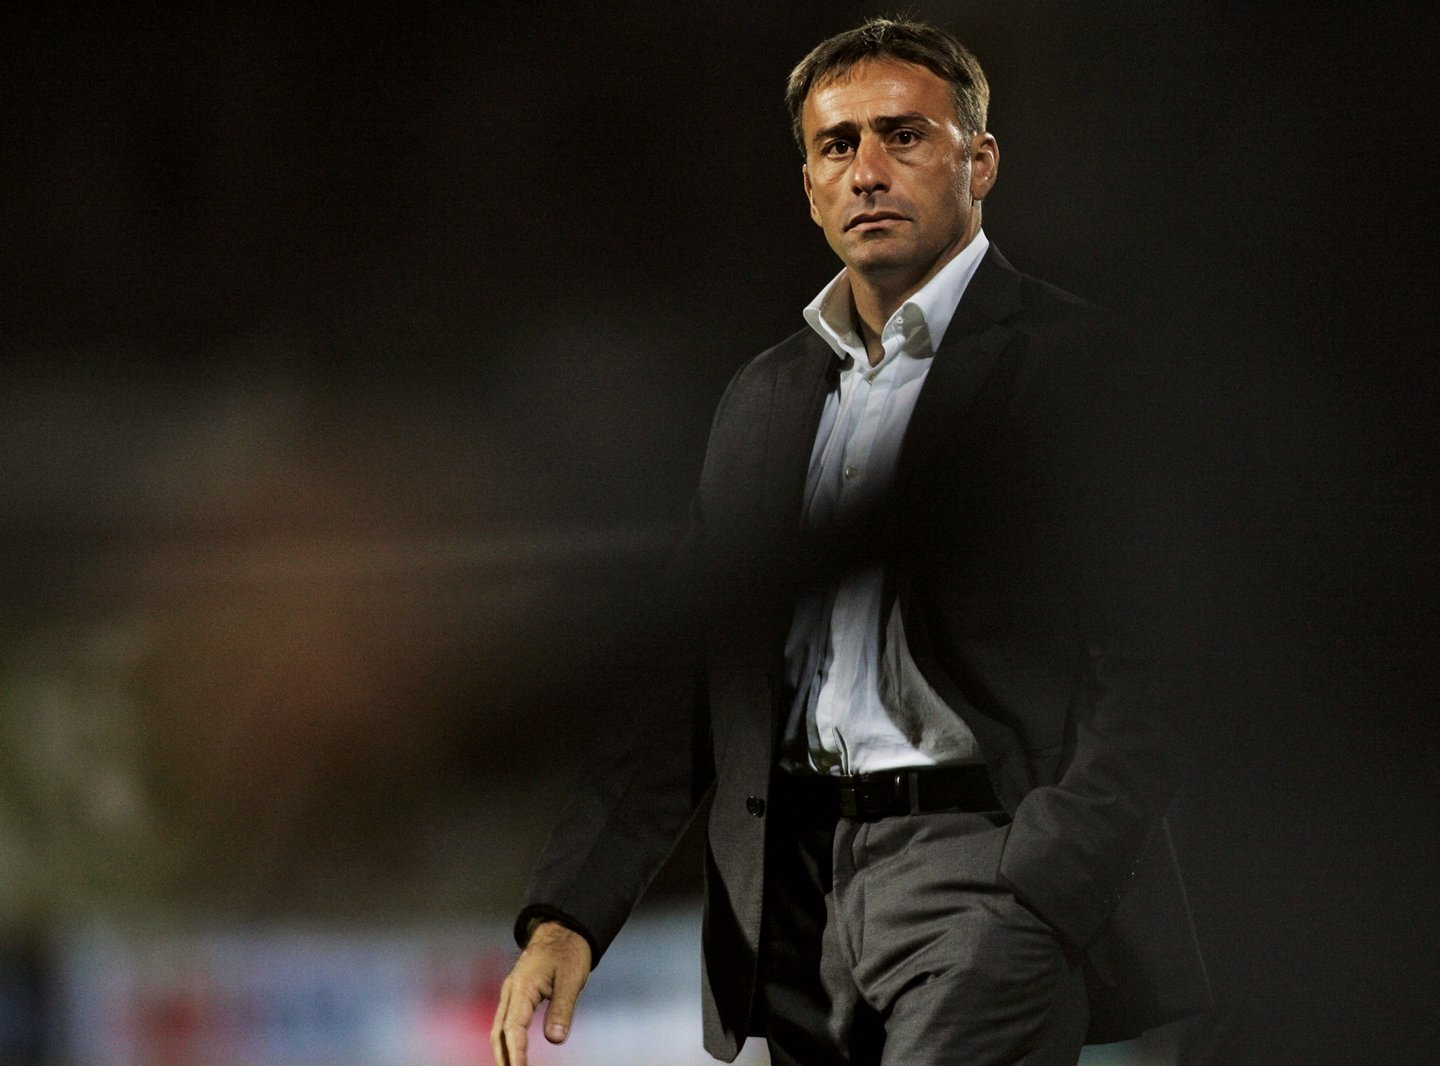 Sporting CP´s coach Paulo Bento is seen after their portuguese Super League football match against Deportivo Aves at the Aves Stadium in Vila das Aves 23 September 2006, in northern Portugal. Sporting won the match 0-2. AFP PHOTO/ MIGUEL RIOPA (Photo credit should read MIGUEL RIOPA/AFP/Getty Images)